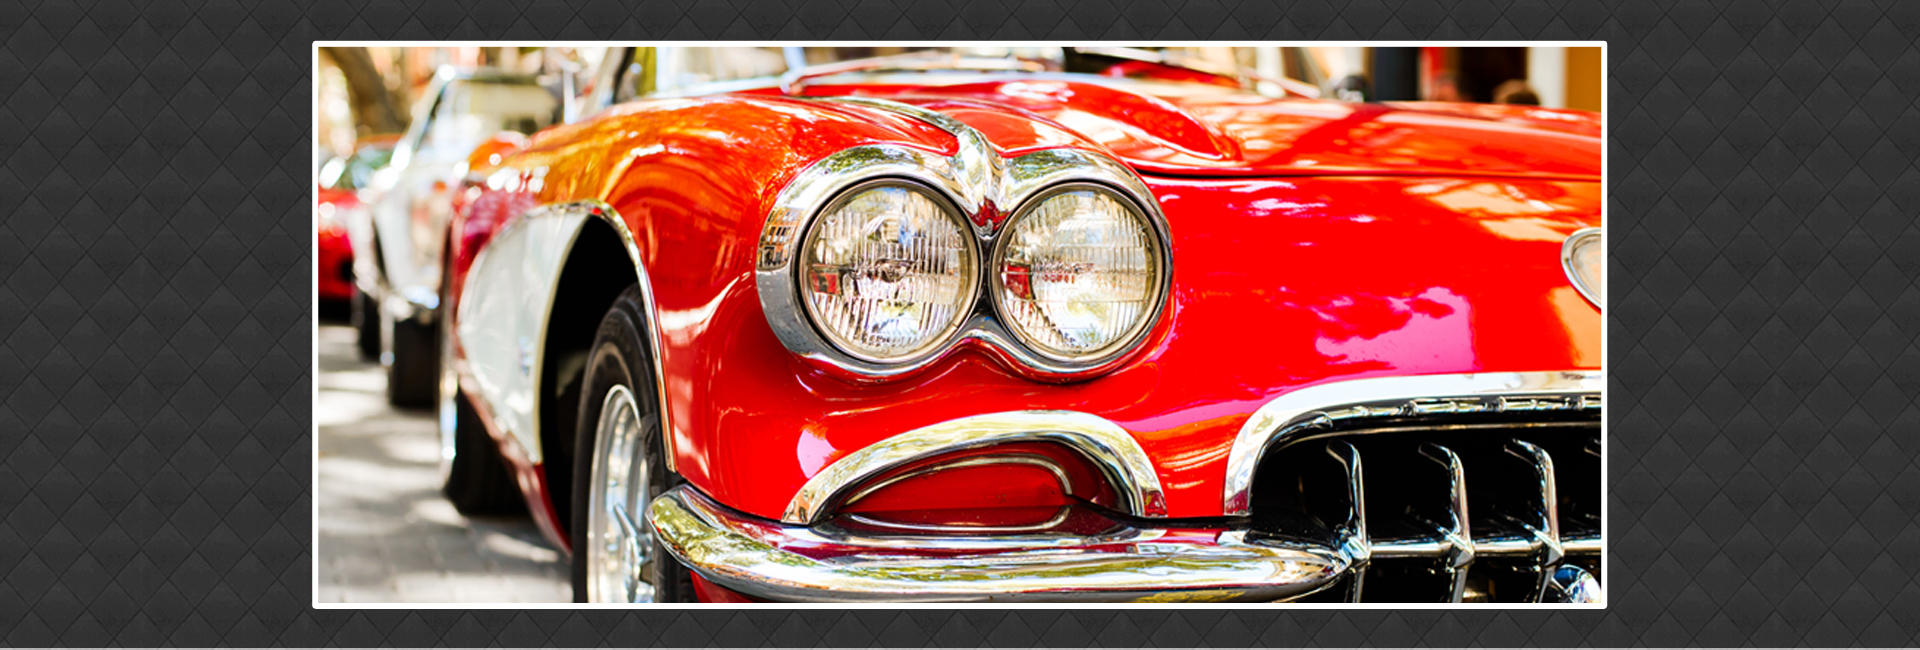 Close-up of Headlights of Red Vintage Car